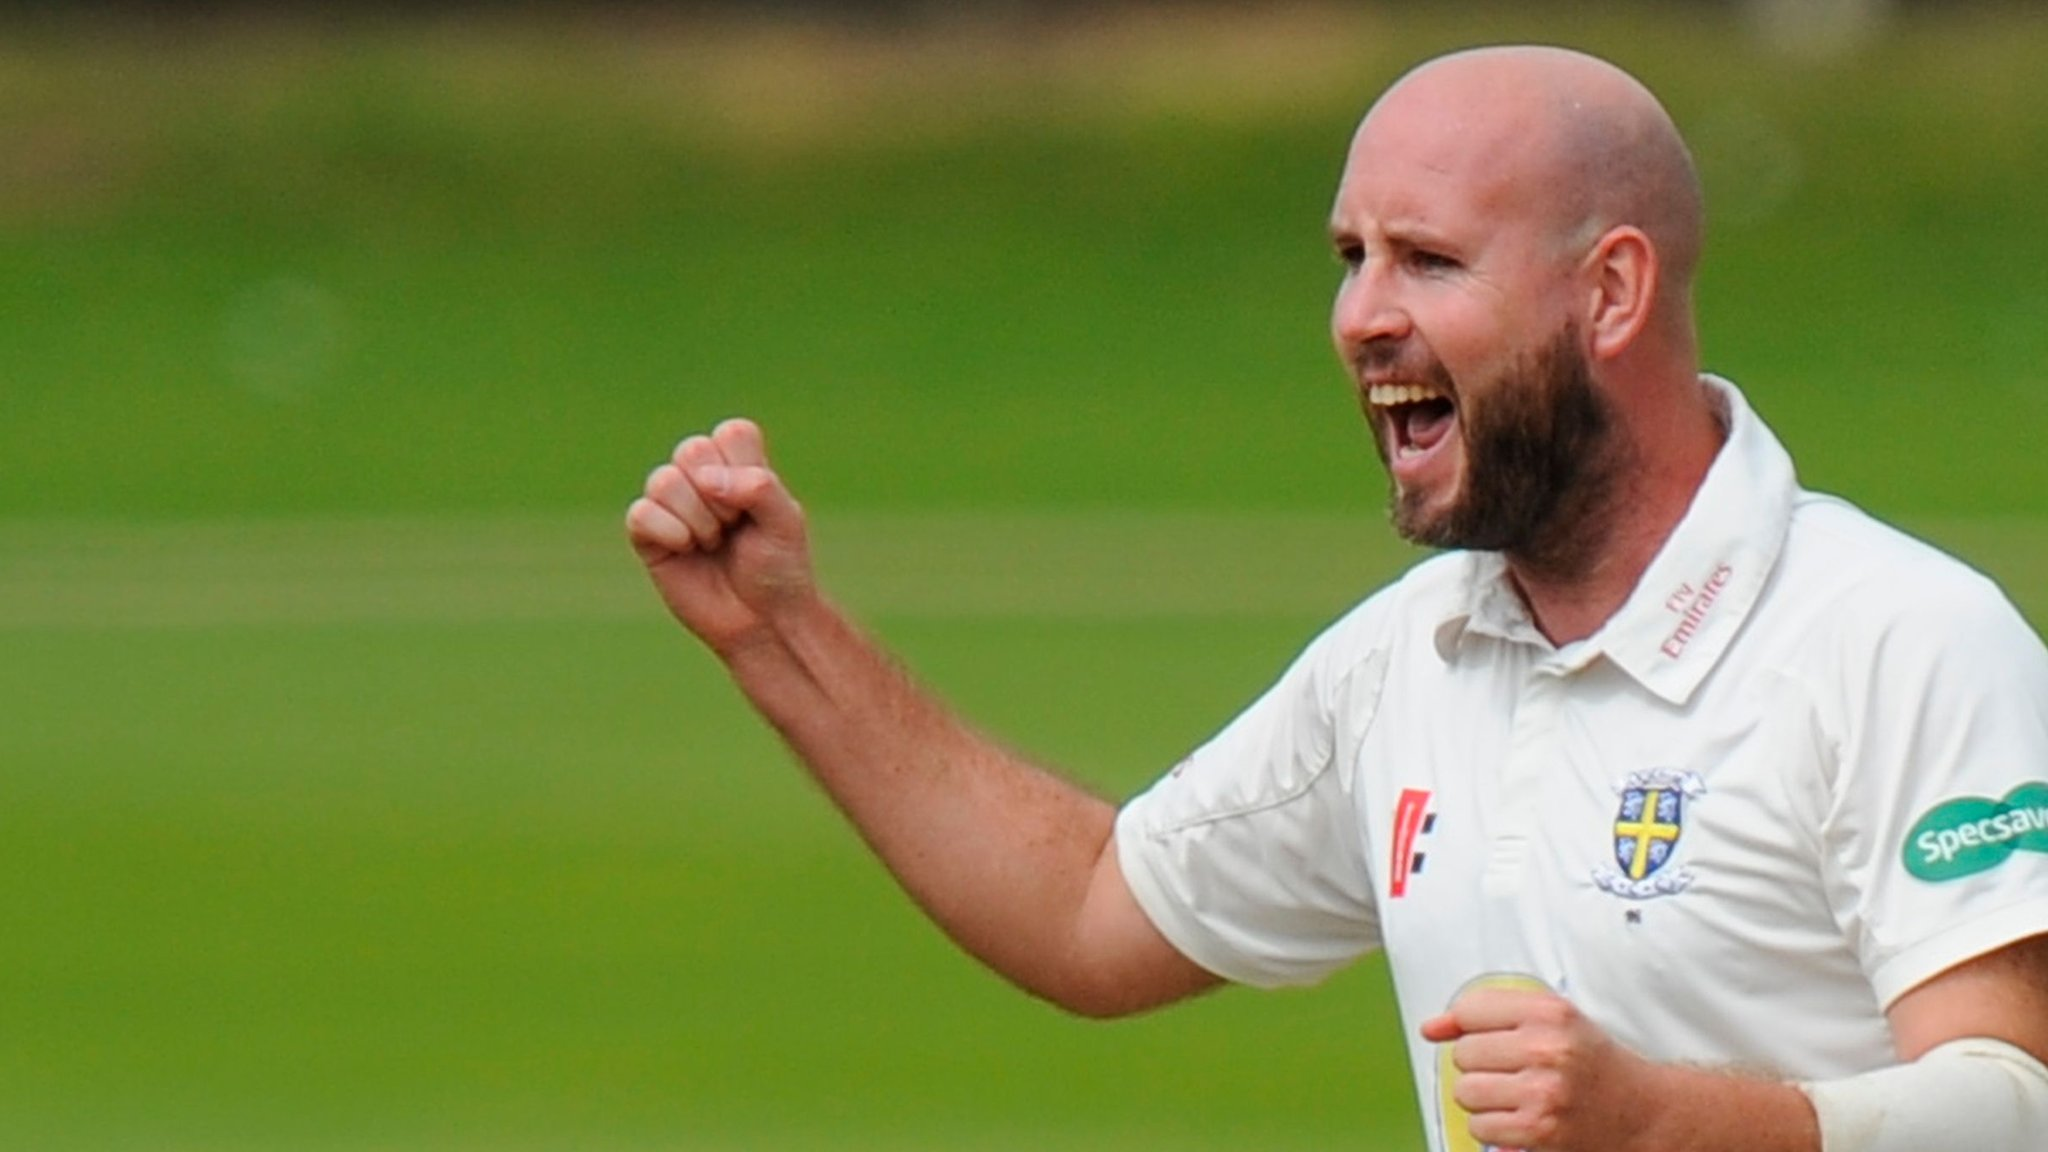 County Championship: Durham beat Derbyshire by 95 runs in Division Two